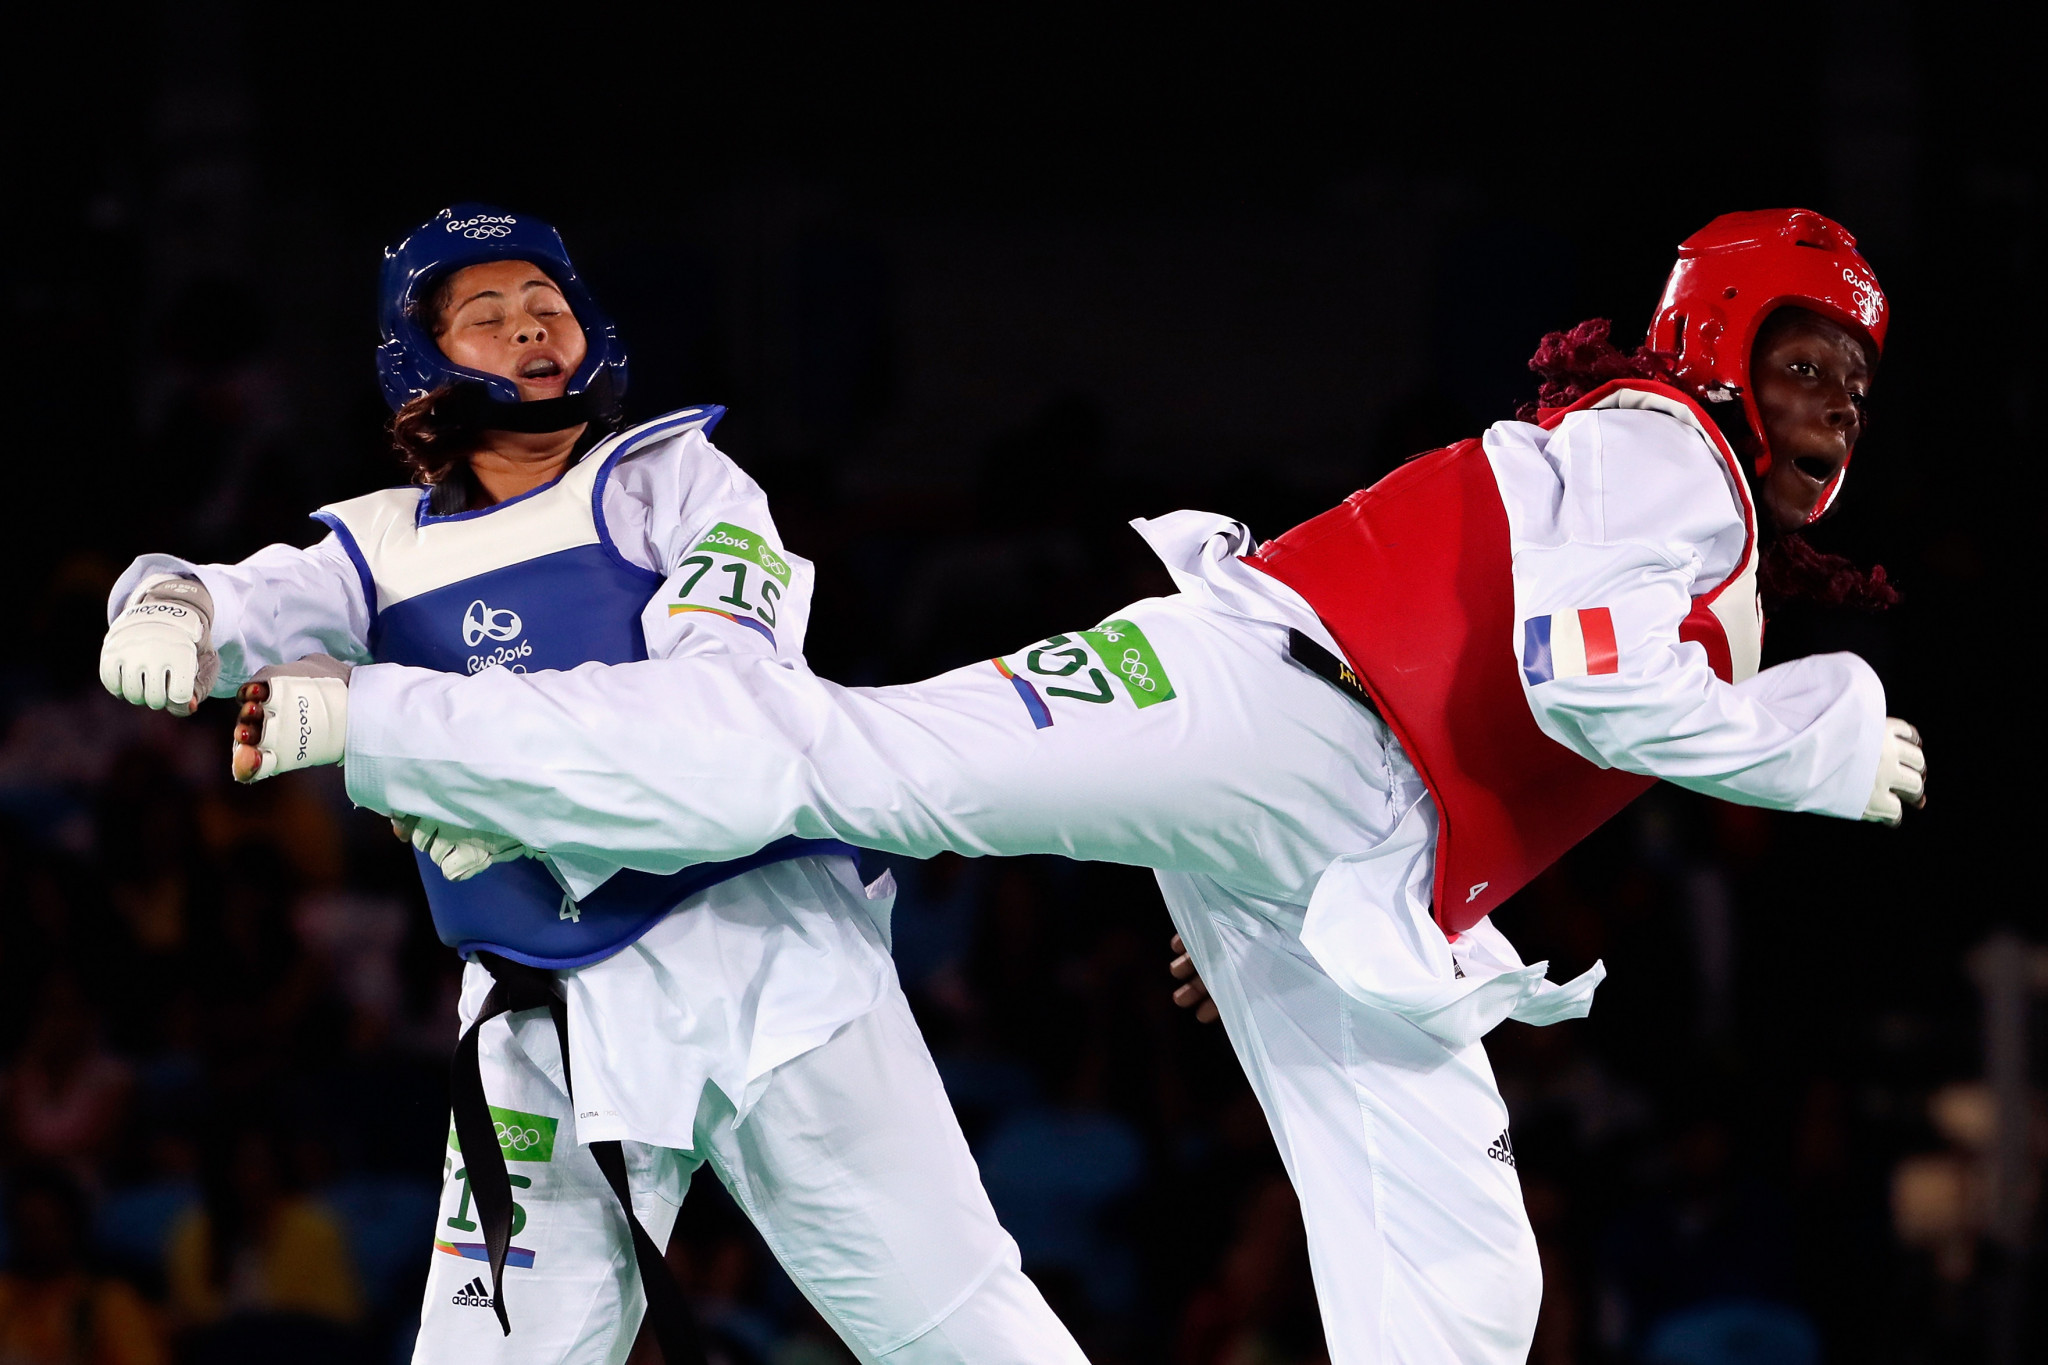 Nisha Rawal of Nepal, left, competed at the Rio 2016 Olympics  ©Getty Images